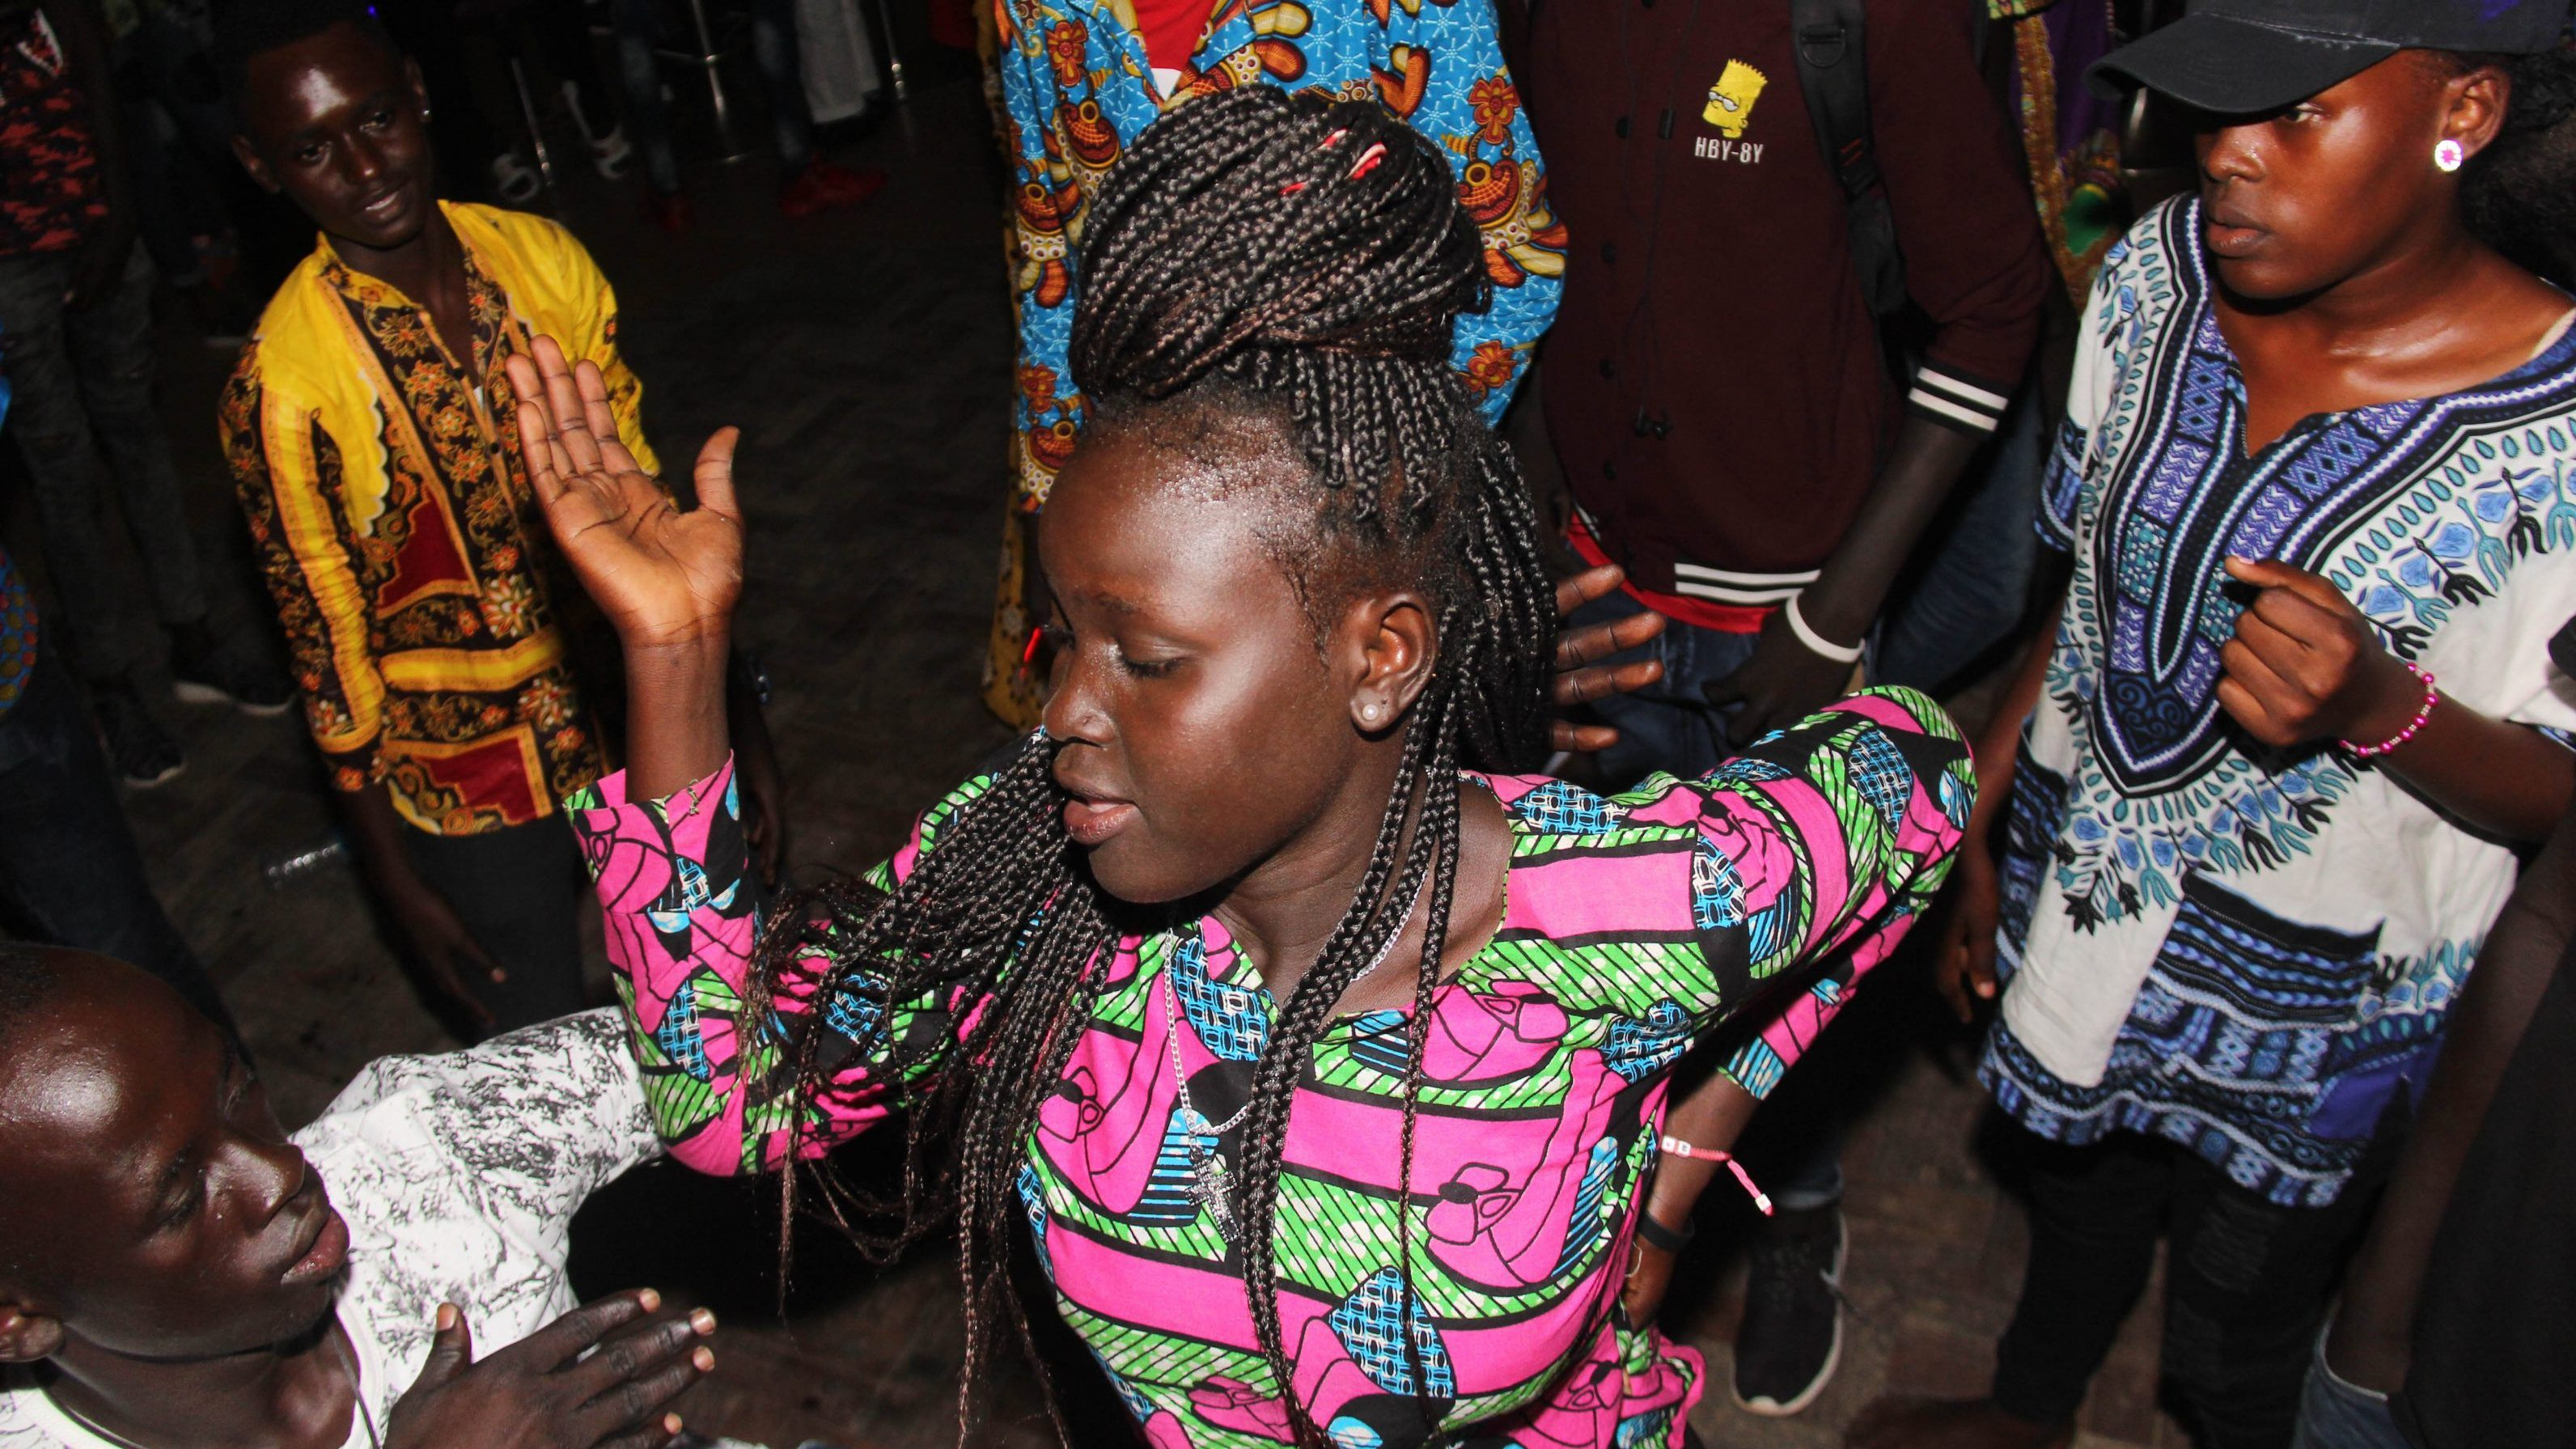 A day party held at Club Signature in Juba, South Sudan.